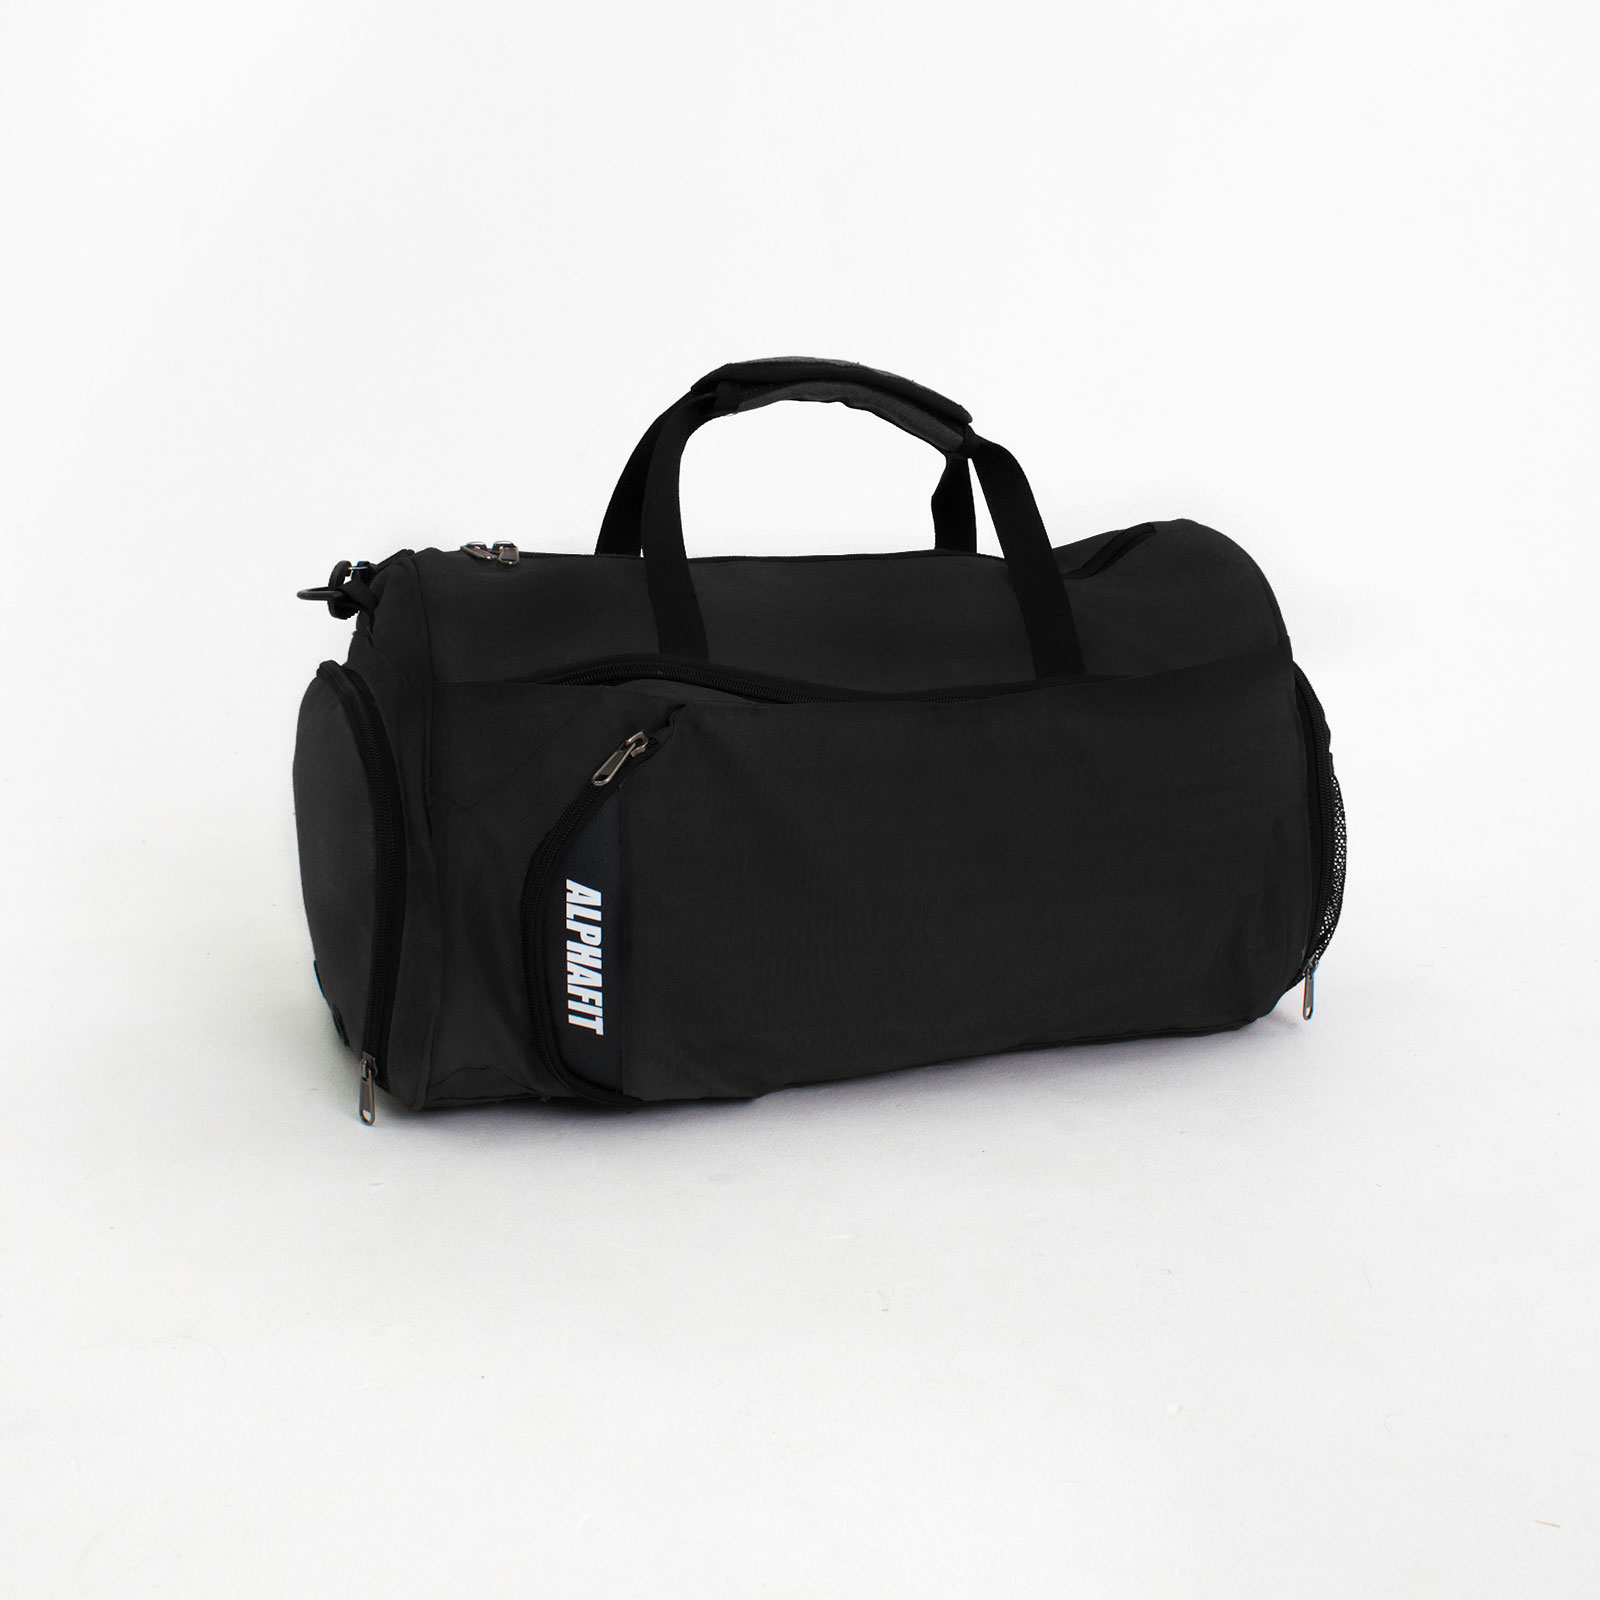 Supply Co Bag image